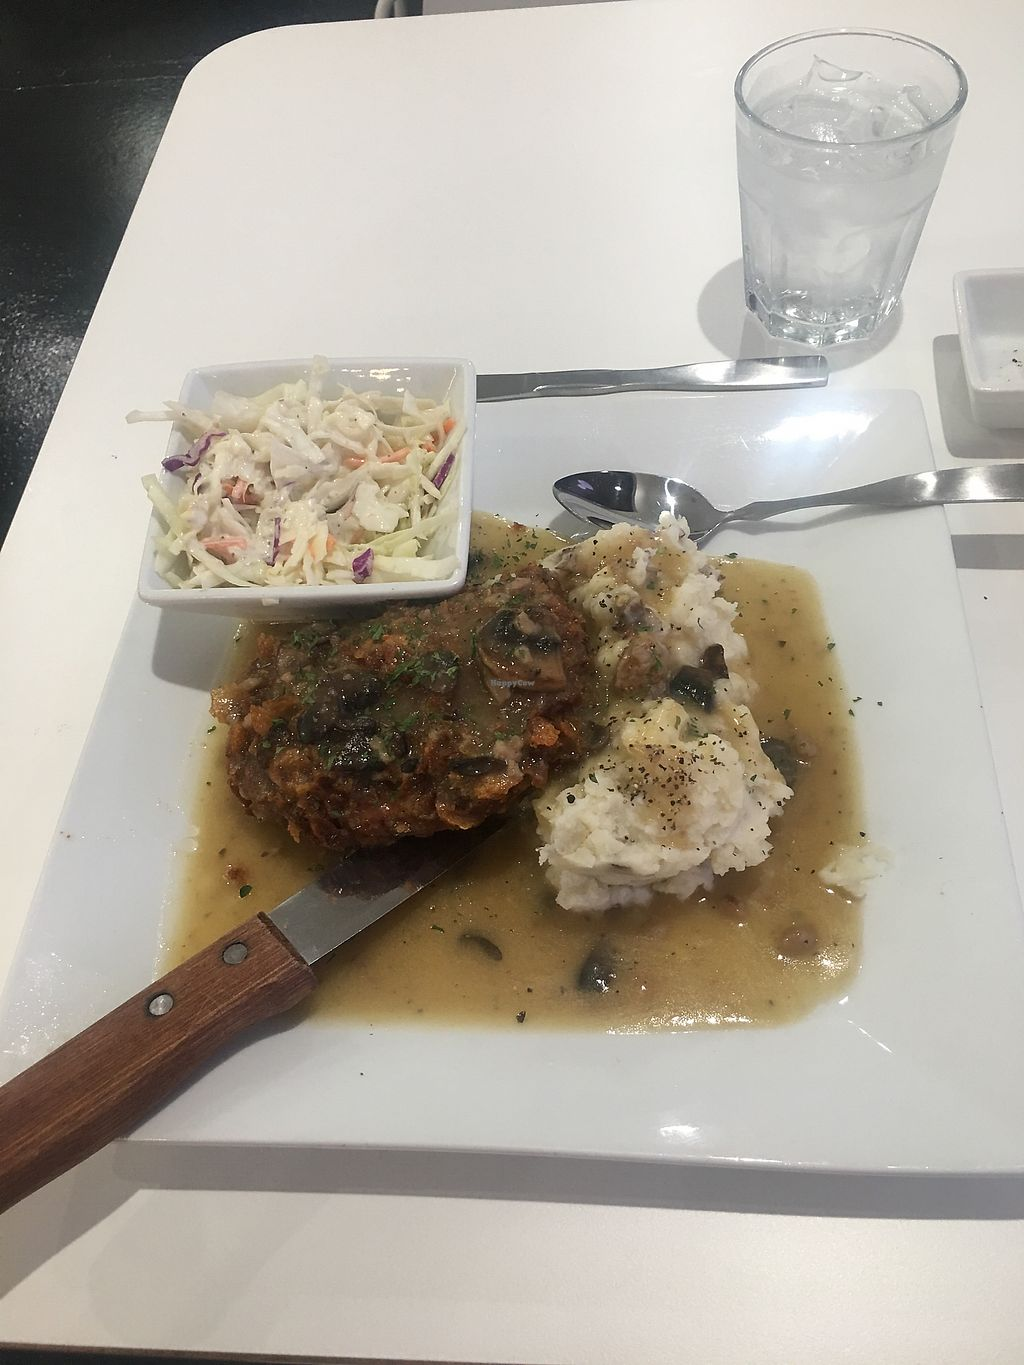 """Photo of The Modern Vegan  by <a href=""""/members/profile/lvasquared"""">lvasquared</a> <br/>Louisiana Fried Chicken <br/> March 23, 2018  - <a href='/contact/abuse/image/114695/374636'>Report</a>"""